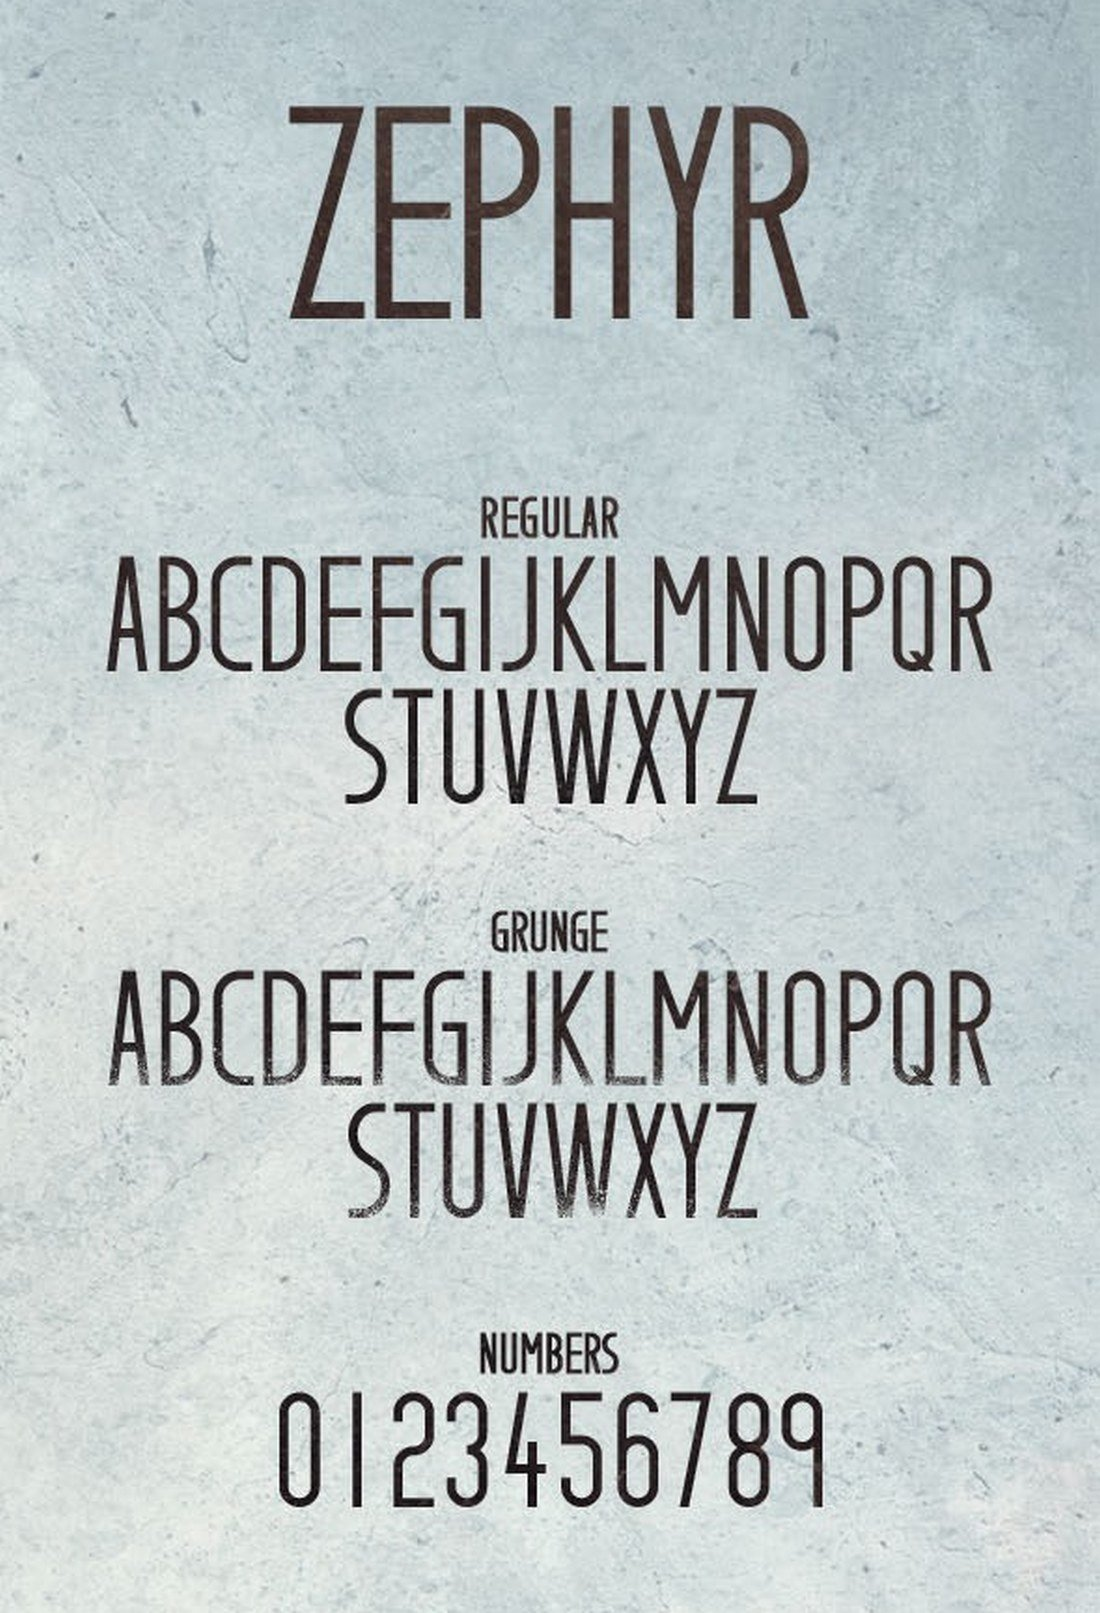 Zephyr-Typeface-2 40+ Best Number Fonts for Displaying Numbers design tips